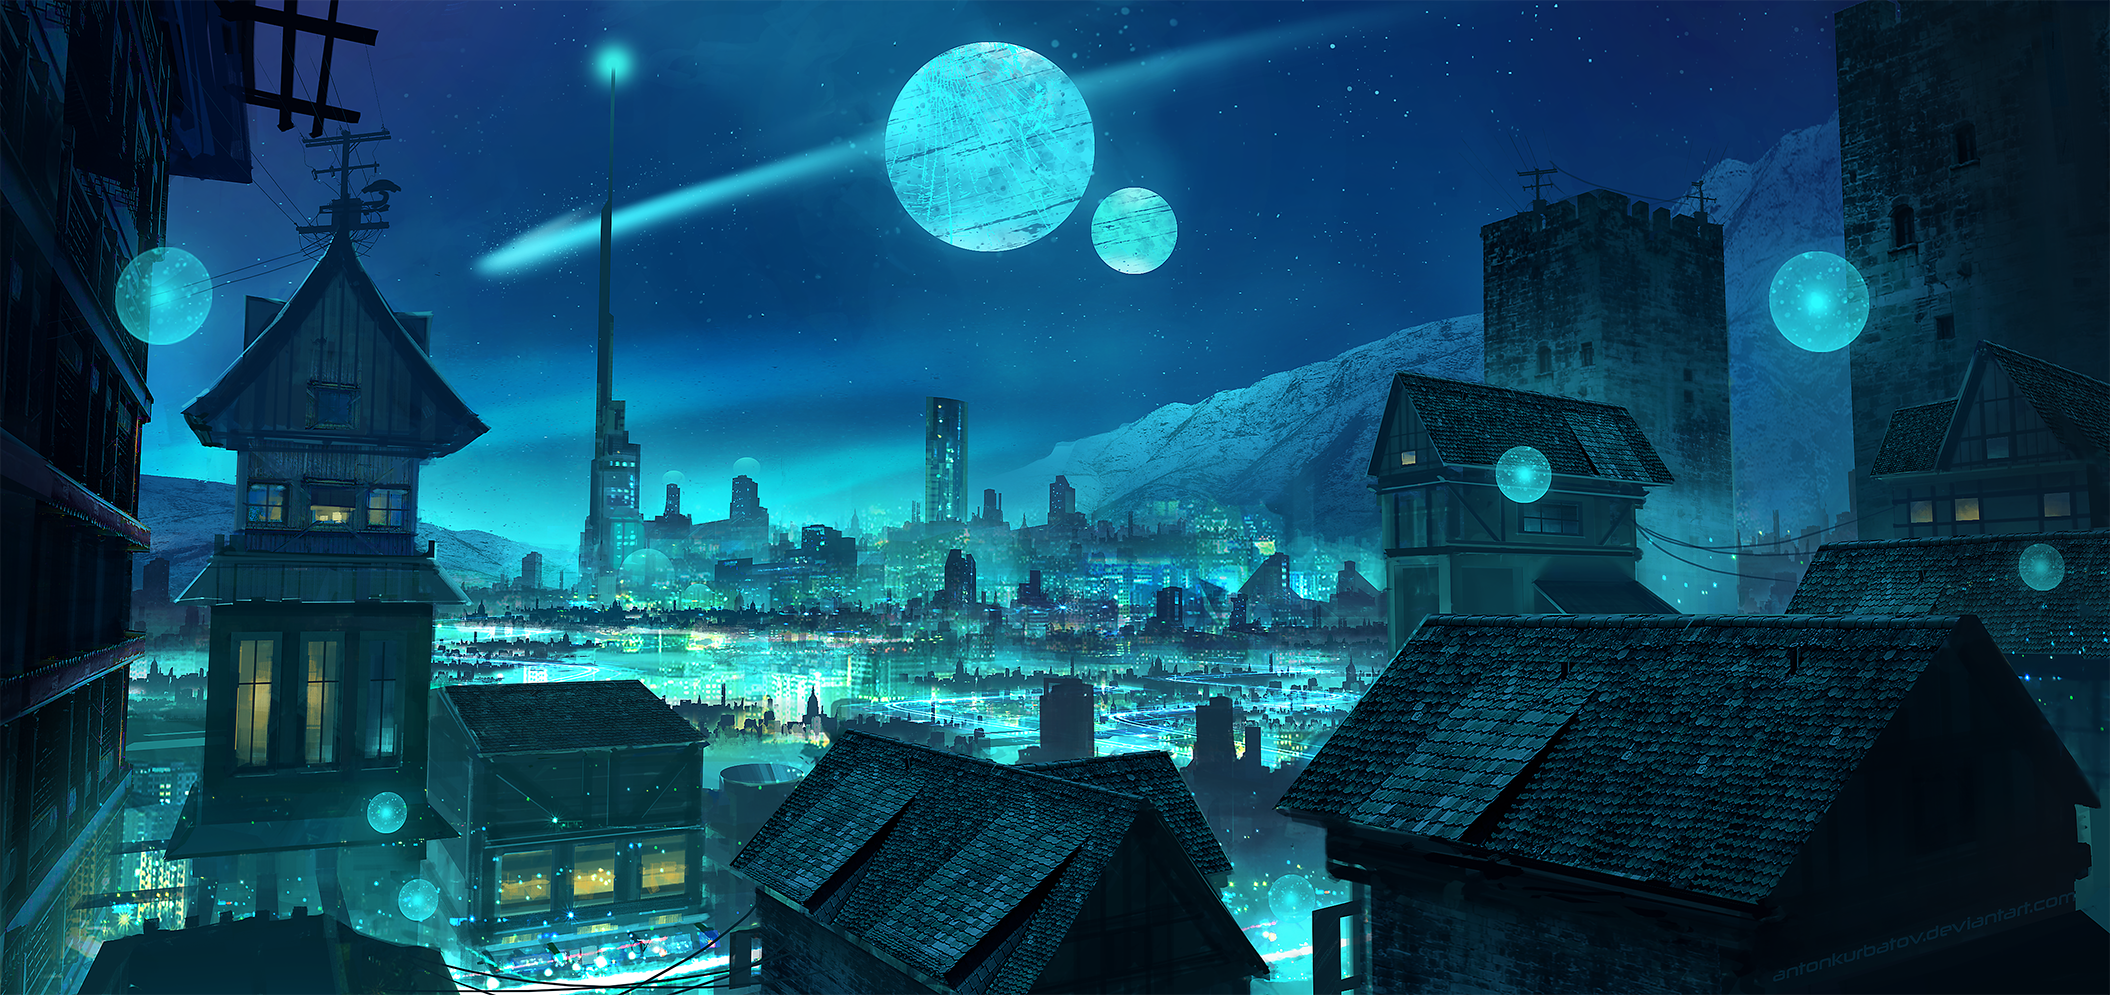 General 2110x995 digital digital art artwork drawing digital painting illustration fantasy art blue cyan Moon moonlight landscape moon rays city cityscape futuristic futuristic city lights city lights architecture building tower neon sky science fiction skyscape neon lights town Anton Kurbatov